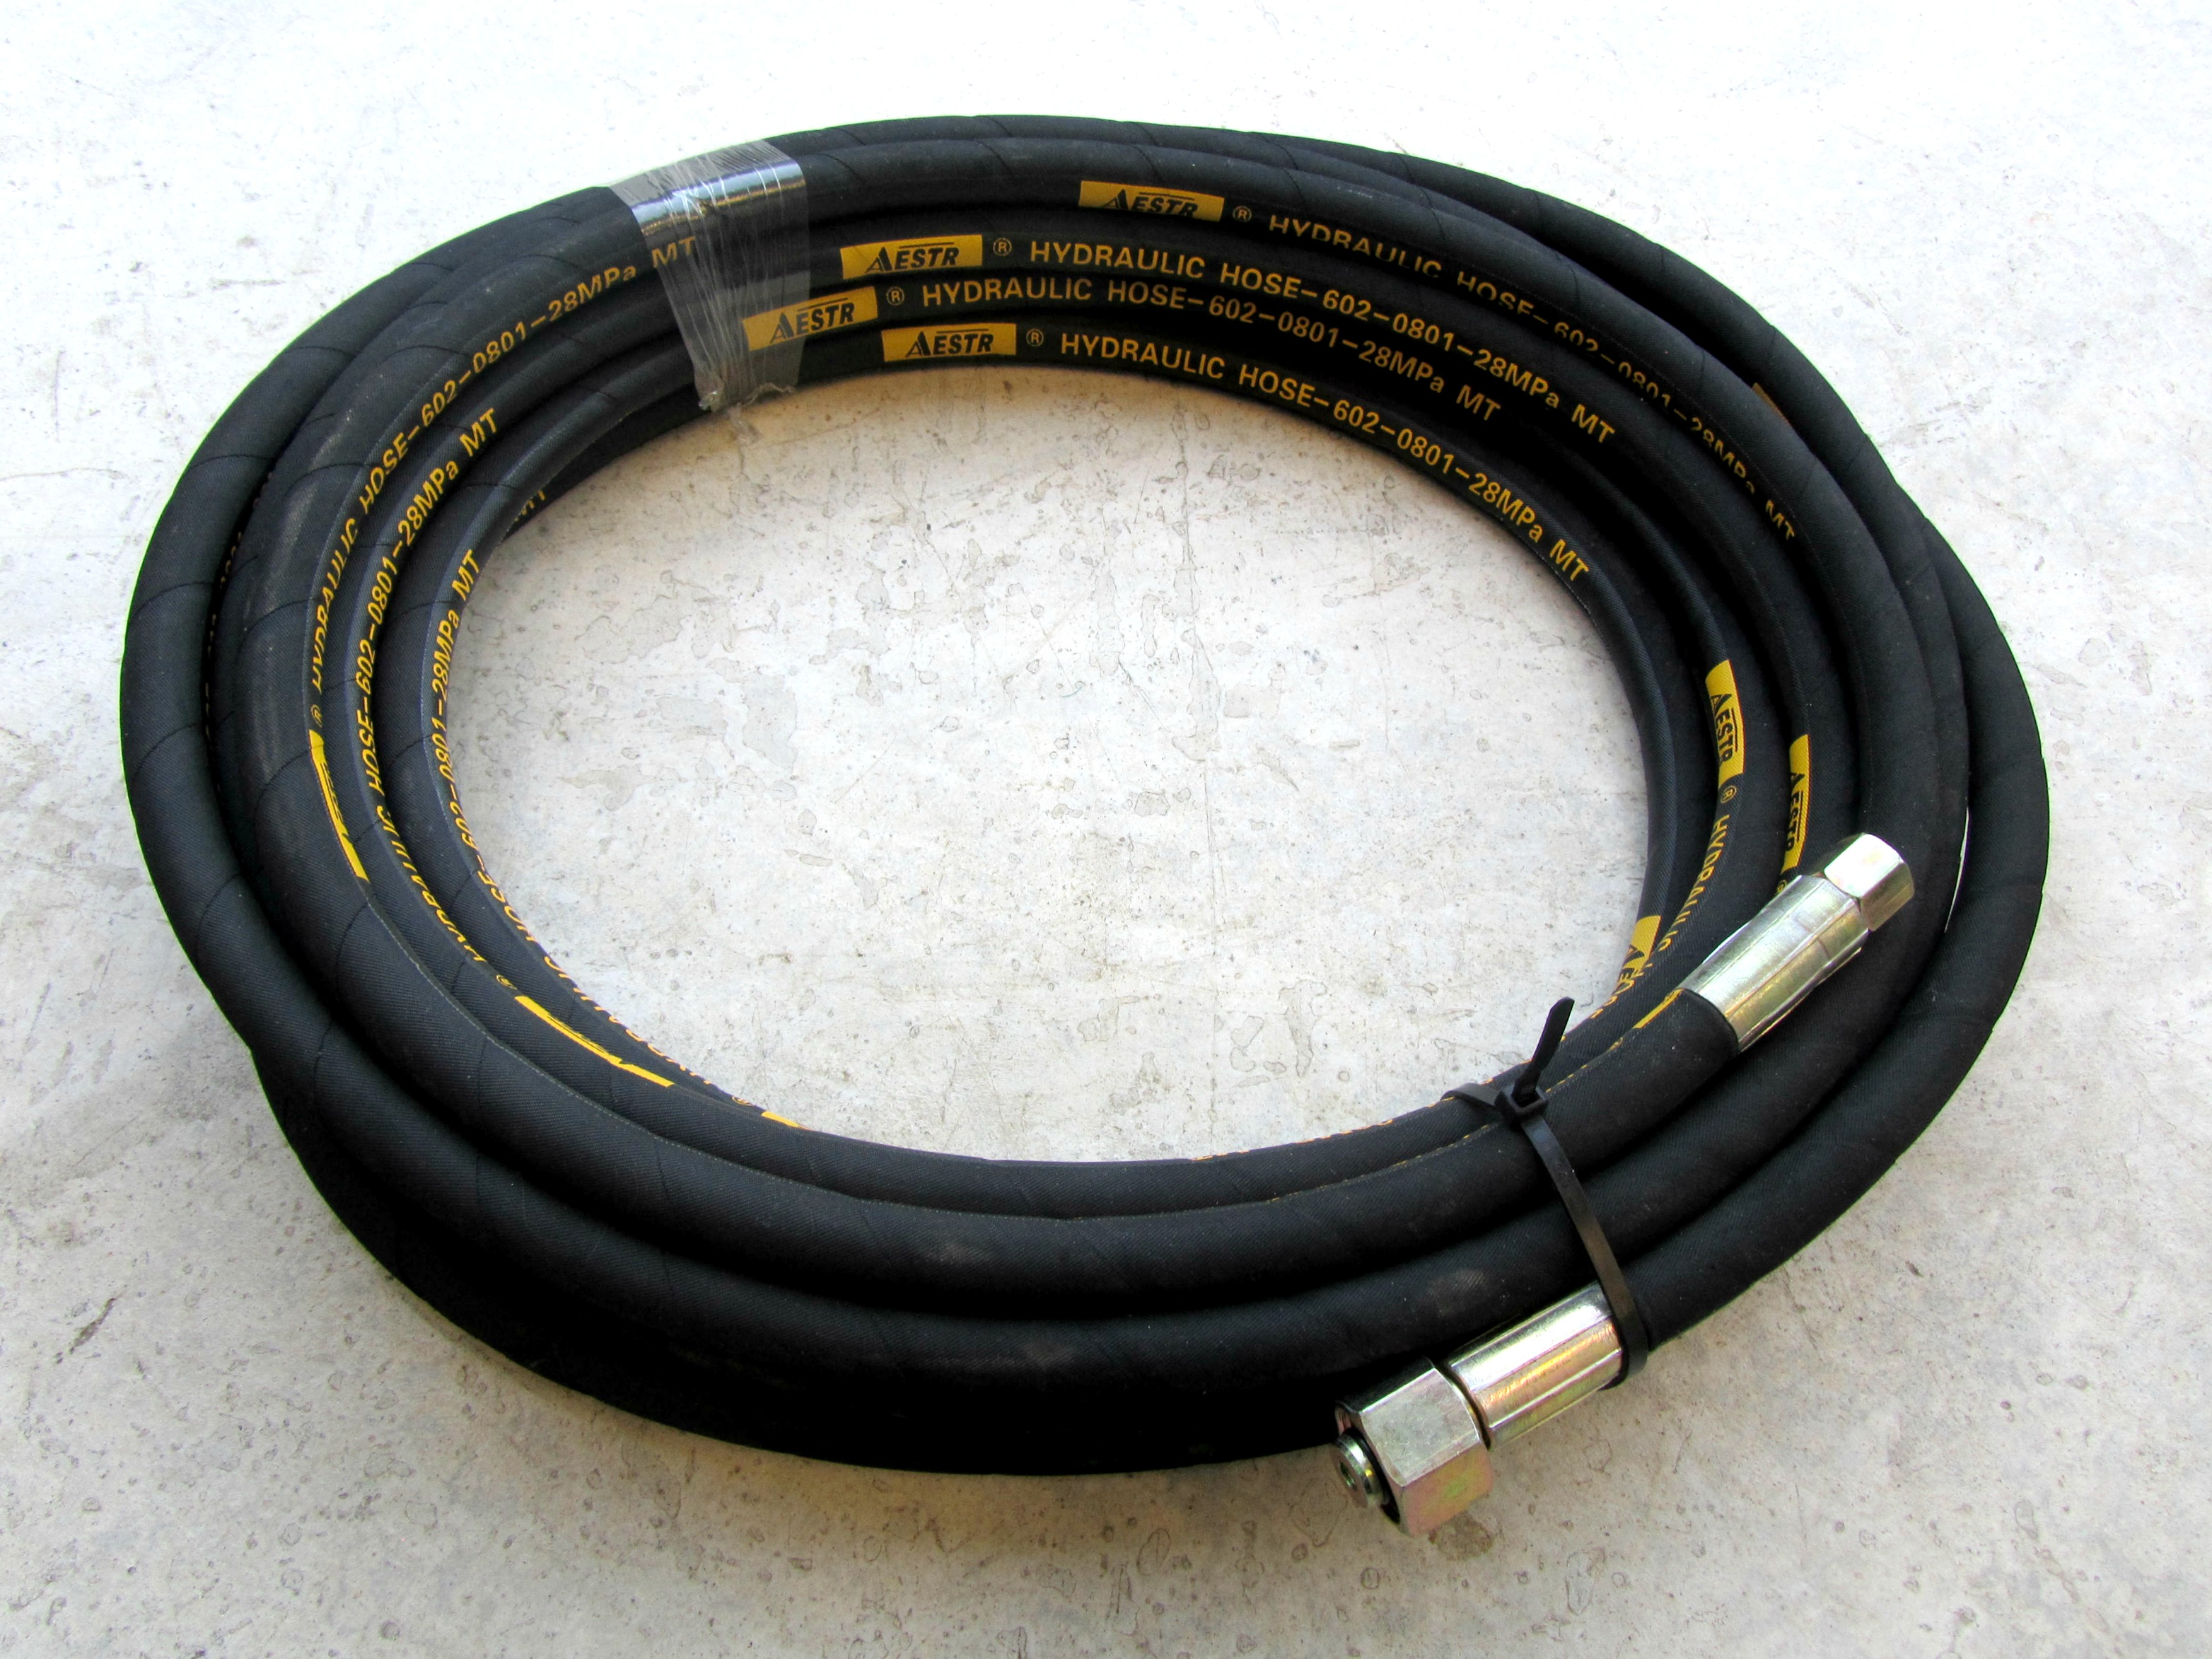 10 Metre Aestr Single Steel Braided High Pressure Hose with 14mm & 22mm Screw Connection Fittings